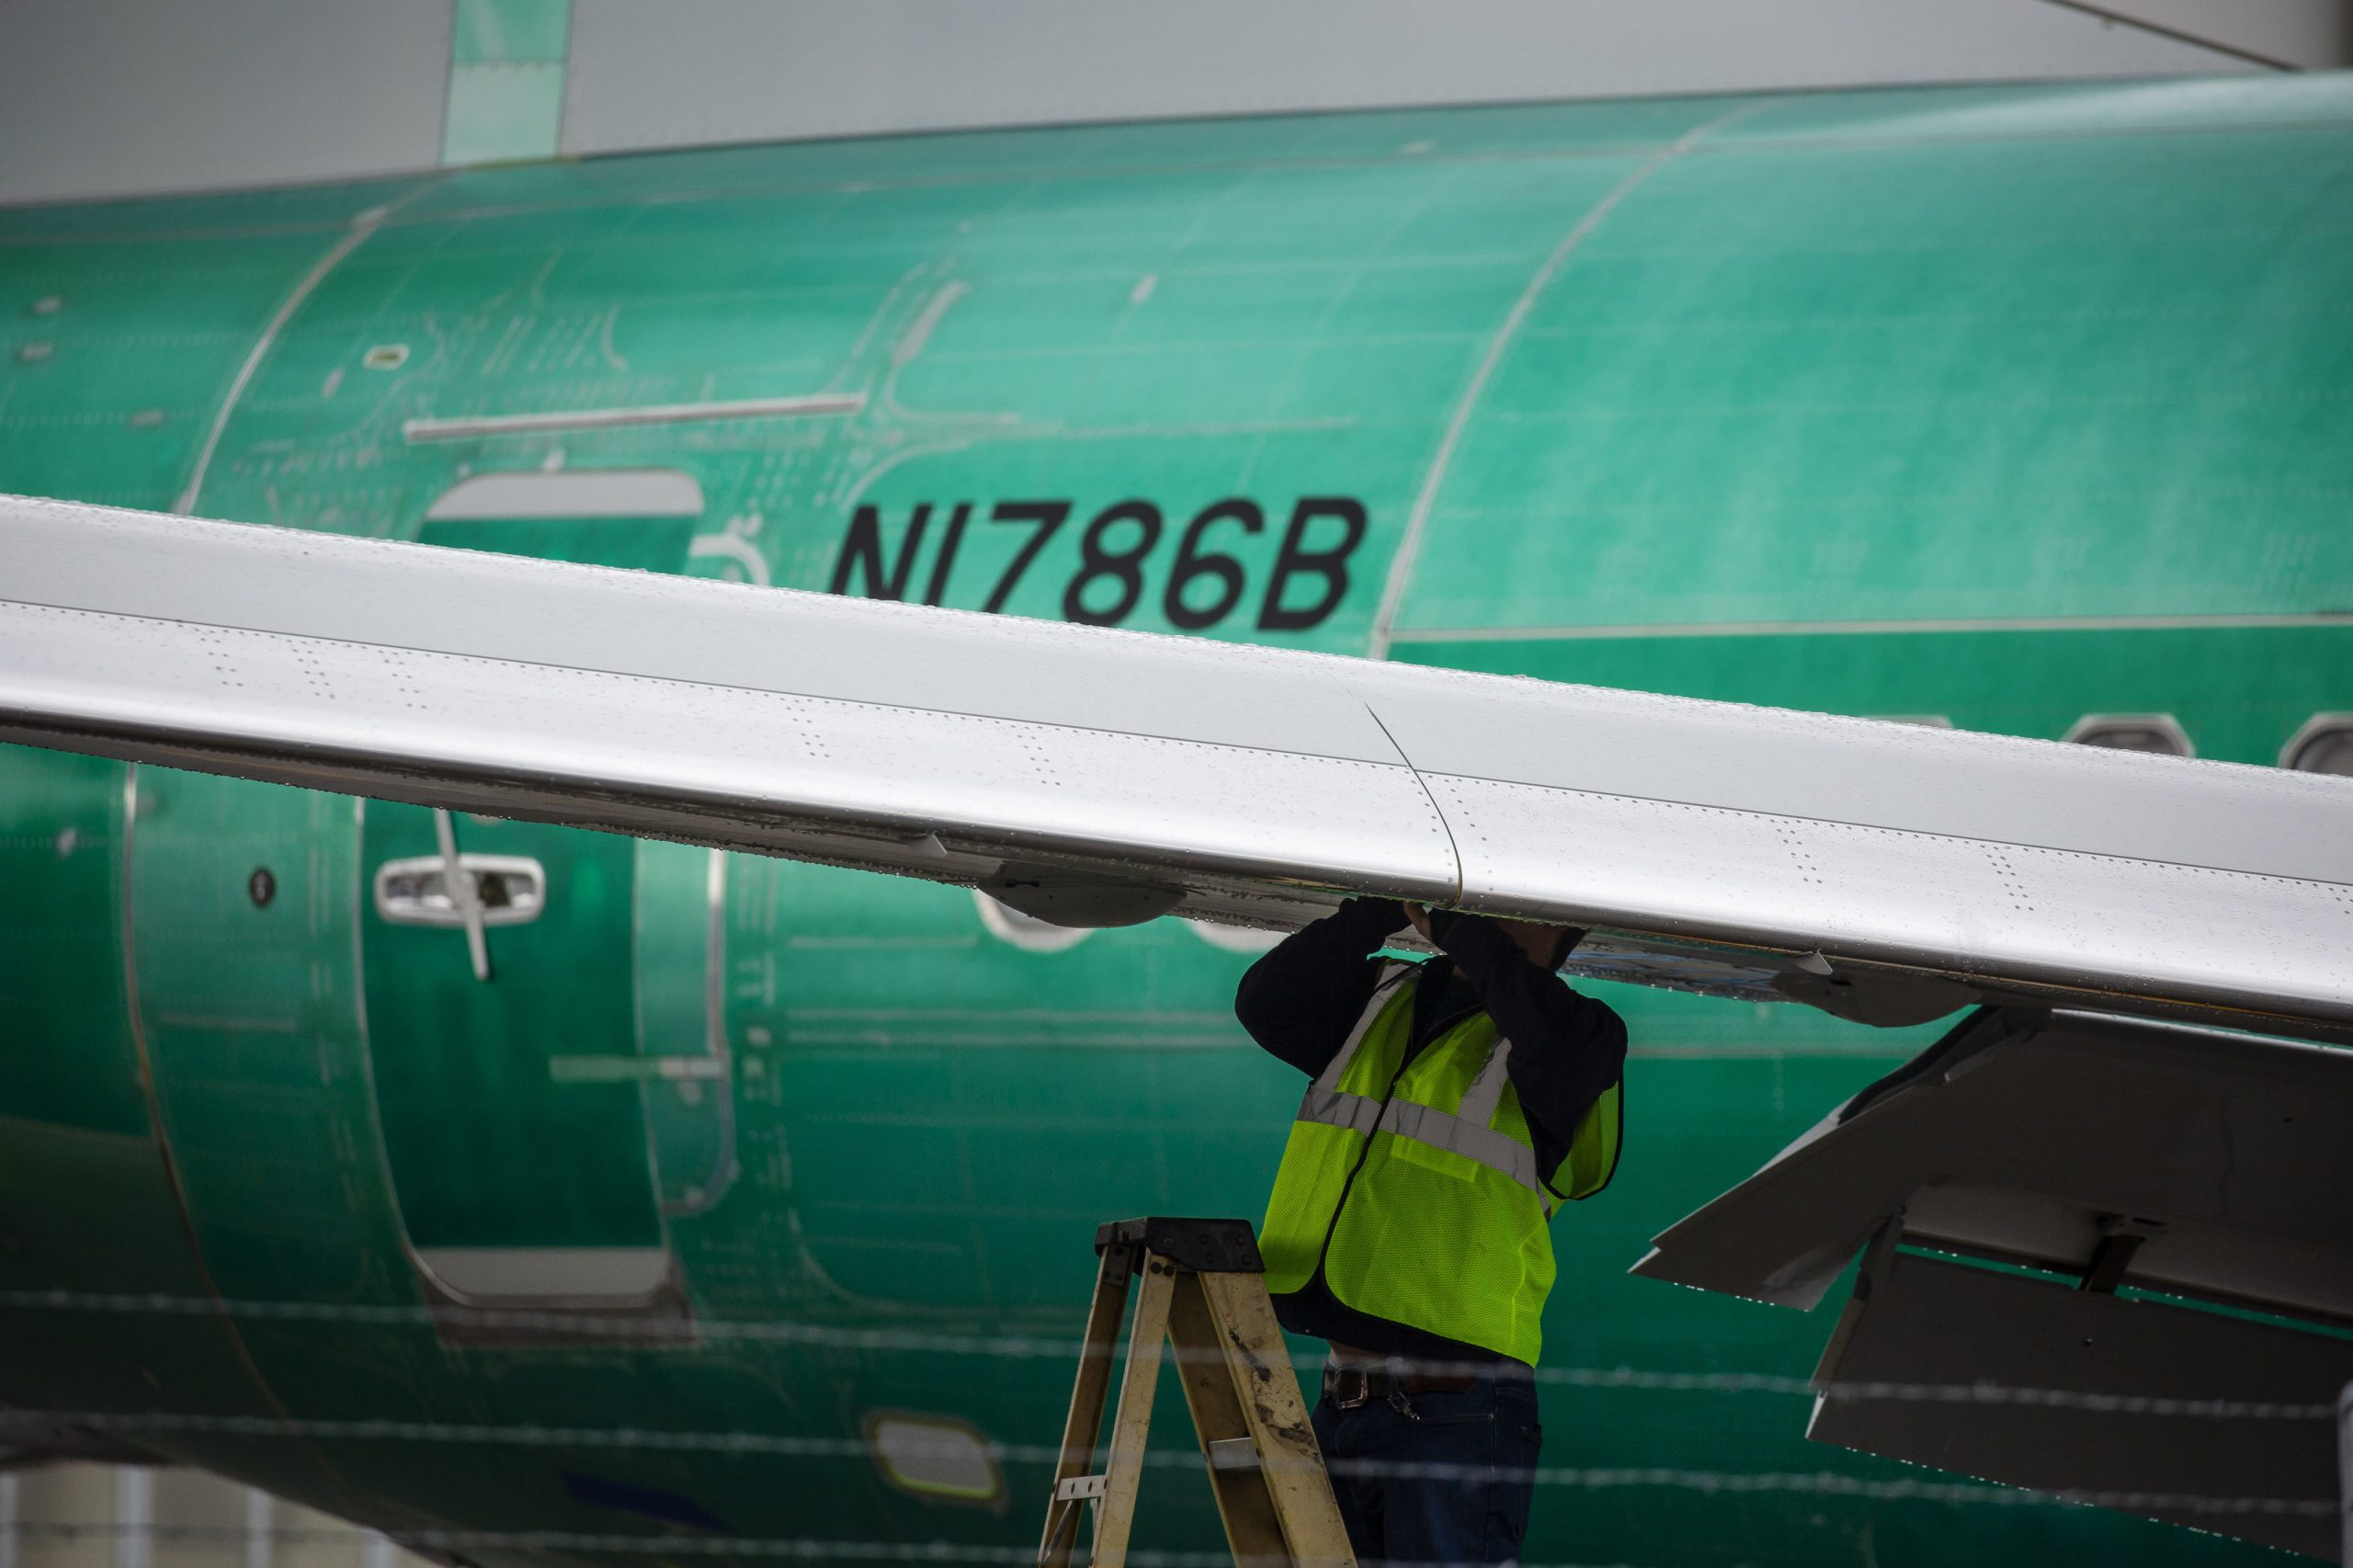 FAA proposes Boeing $5.4 million fine for defective 737 Max parts